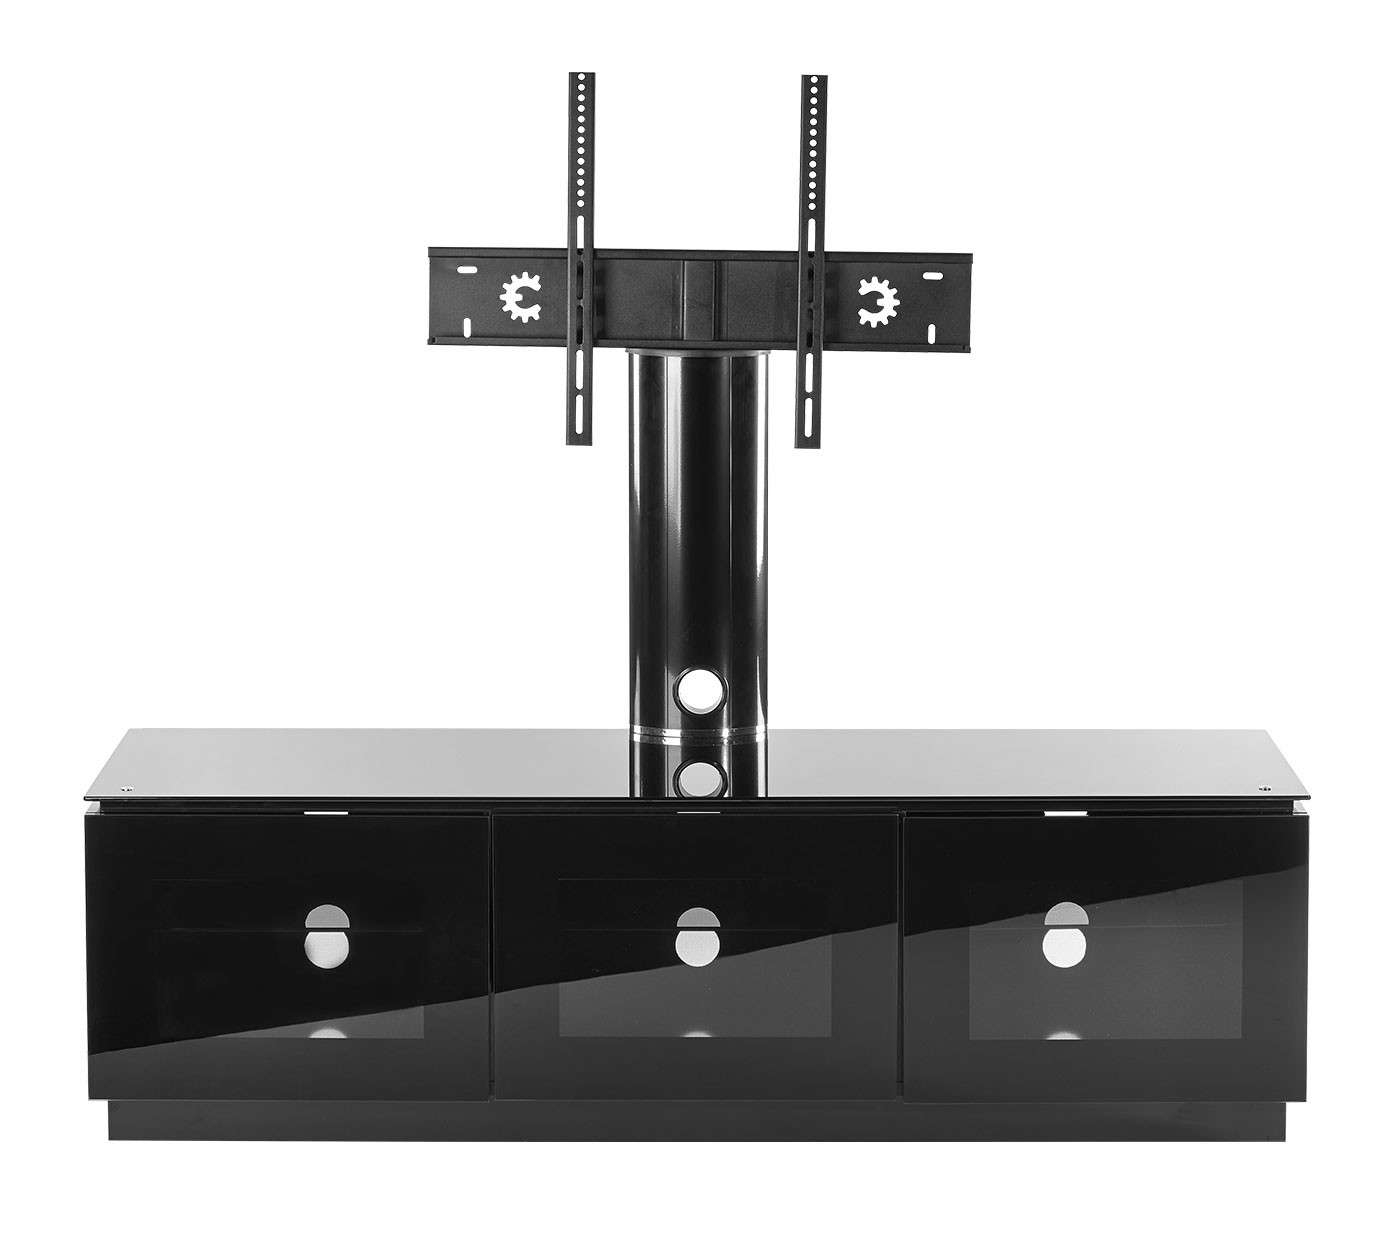 Black Tv Cabinet With Mount For Up To 65 Inch Tv | Mmt D1500 Xarm With Tv Cabinets (View 5 of 20)